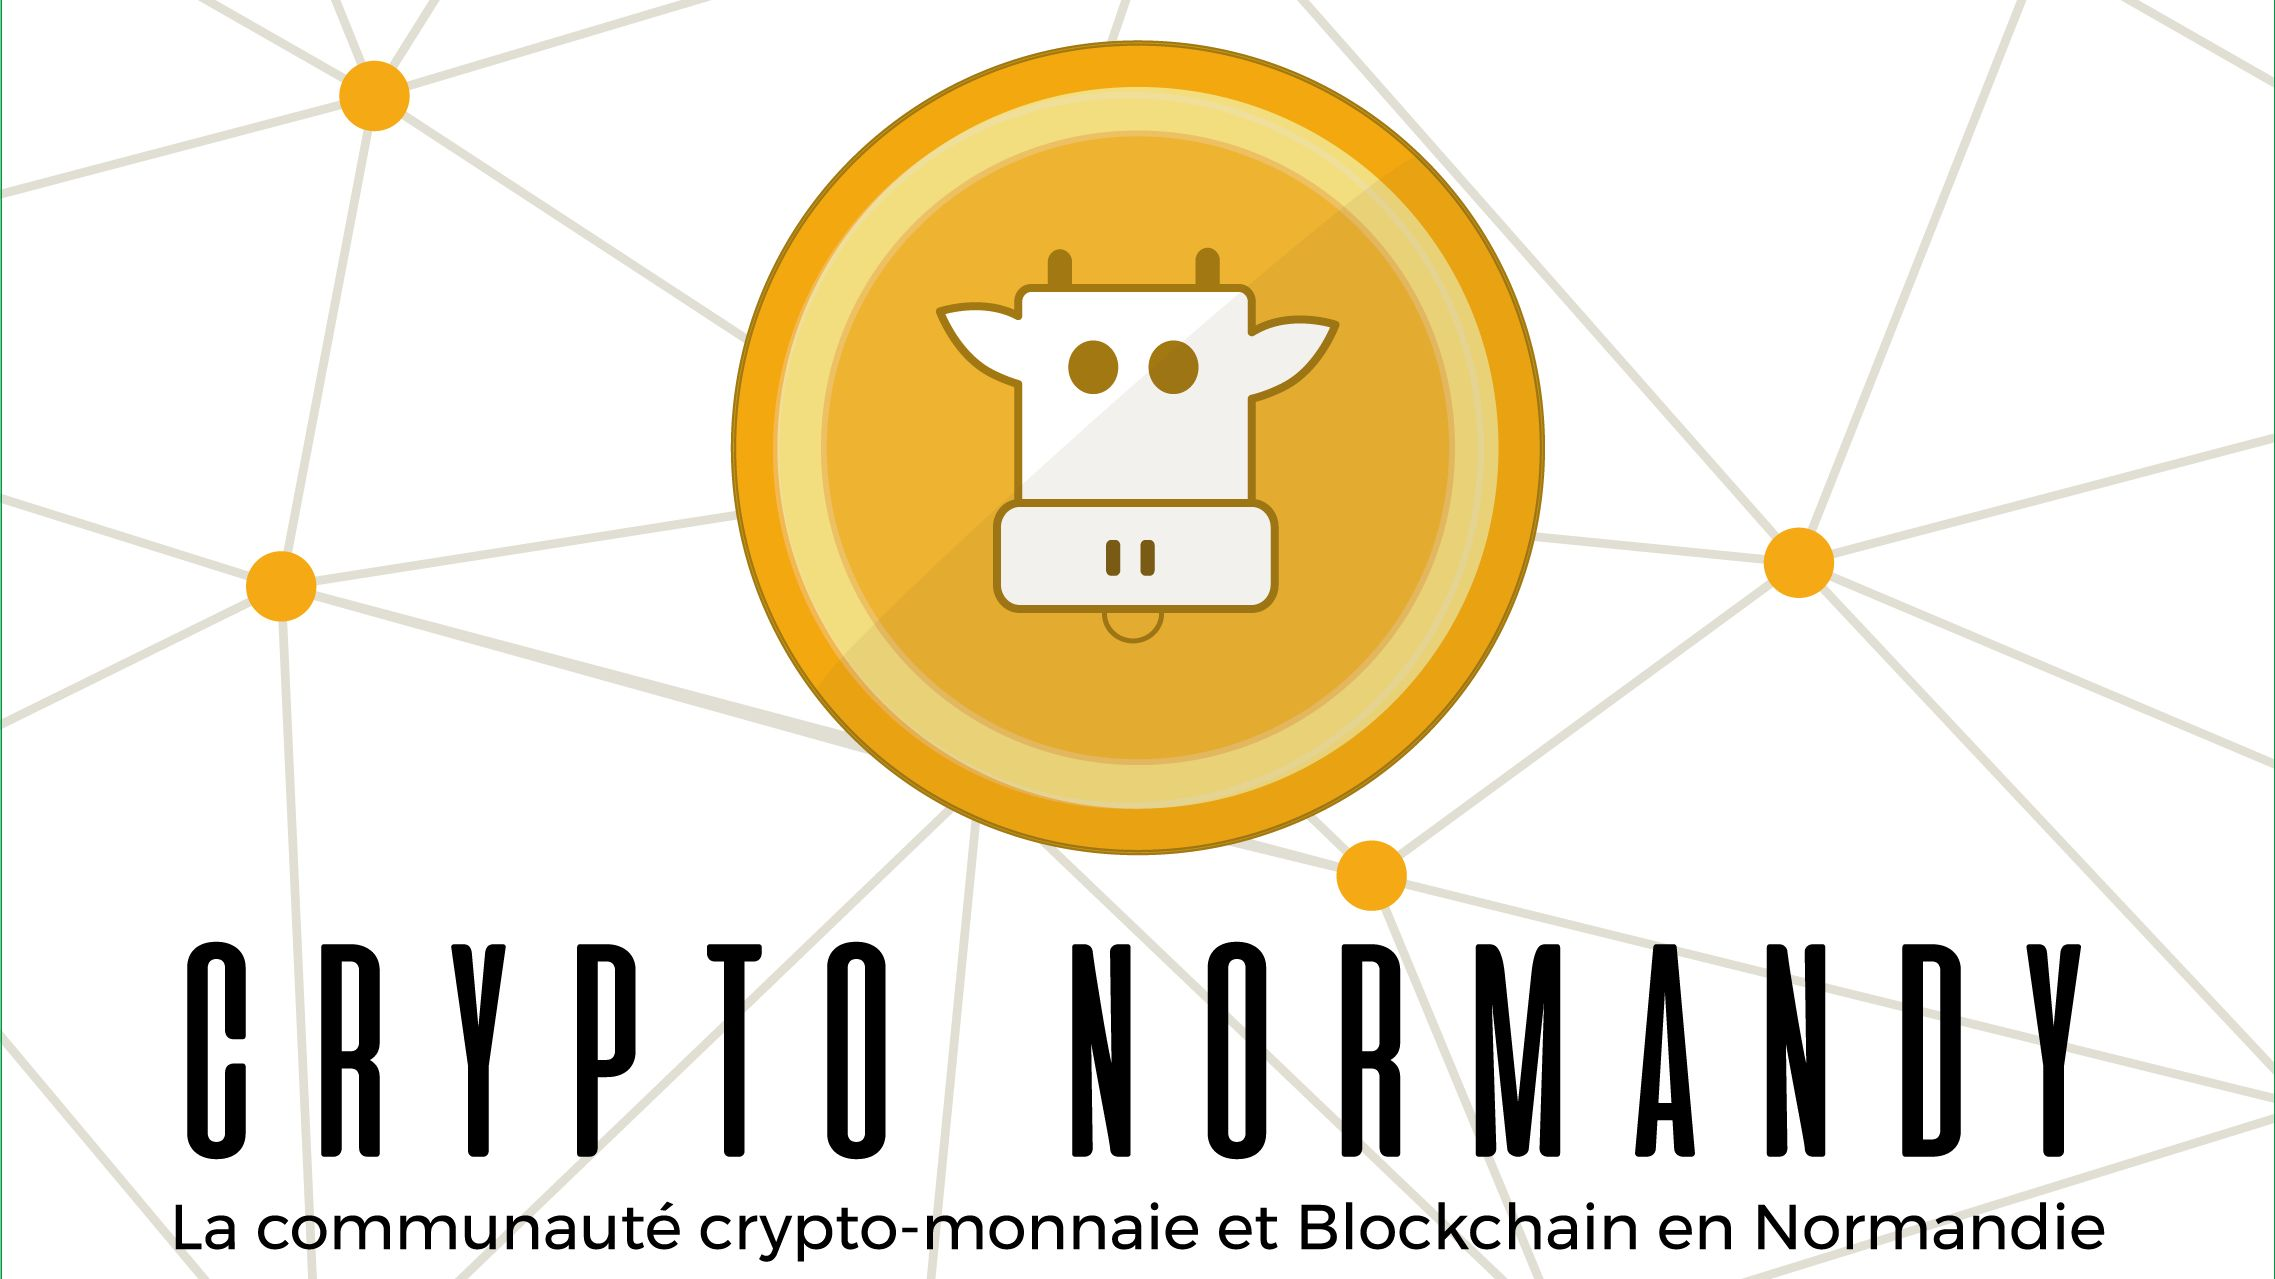 Crypto Normandy